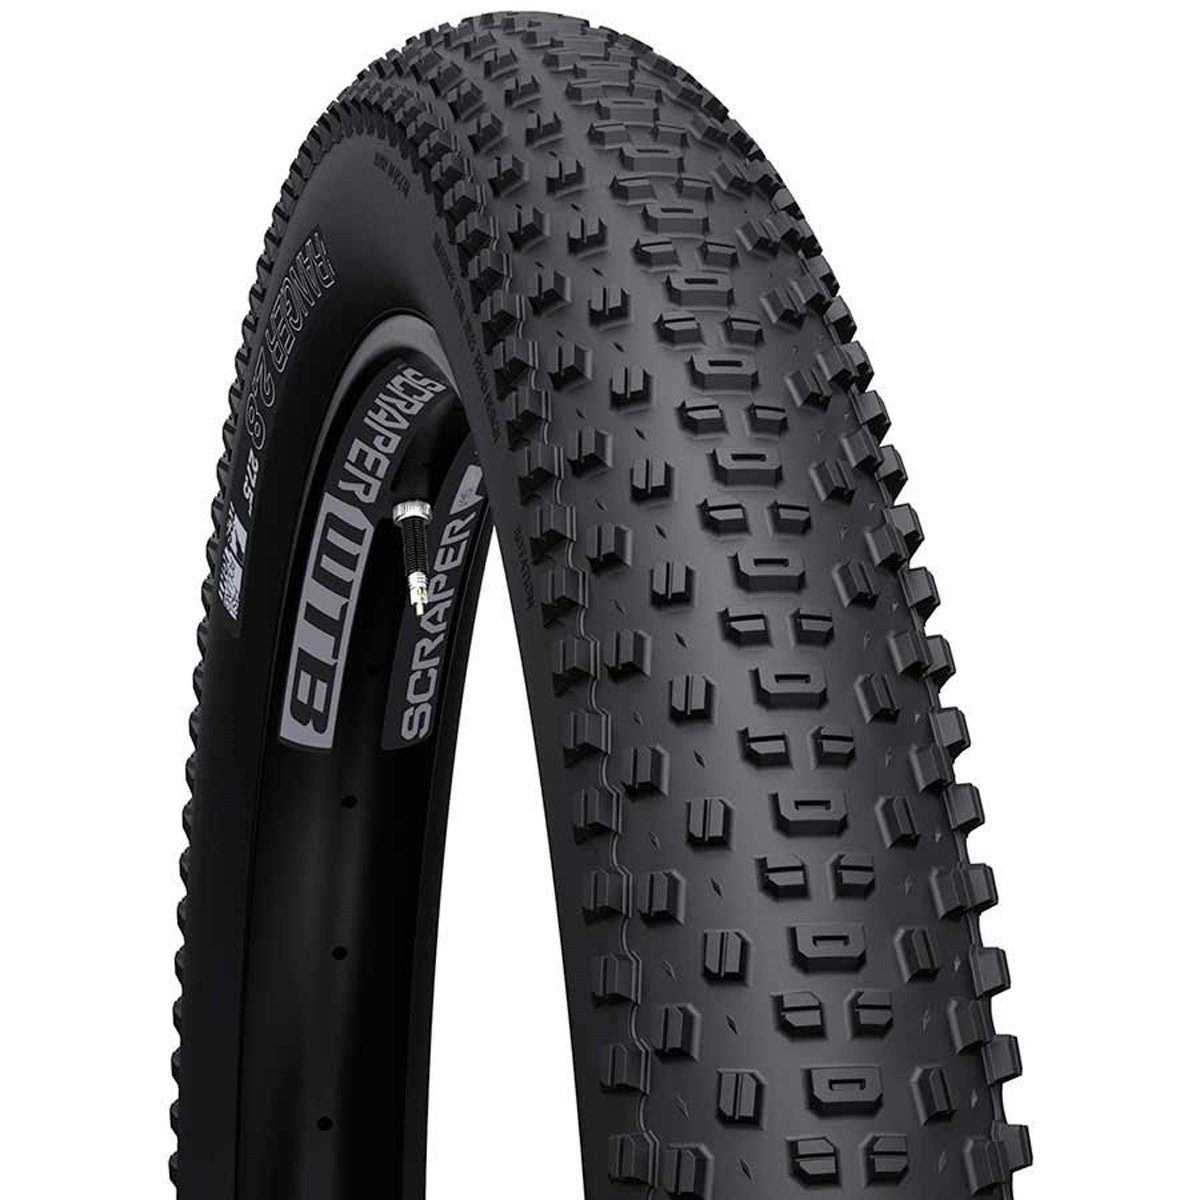 W010-0669 WTB Ranger TCS Dual DNA Folding Tubeless Ready Bicycle Tire 27.5in Wilderness Trail Bikes Inc